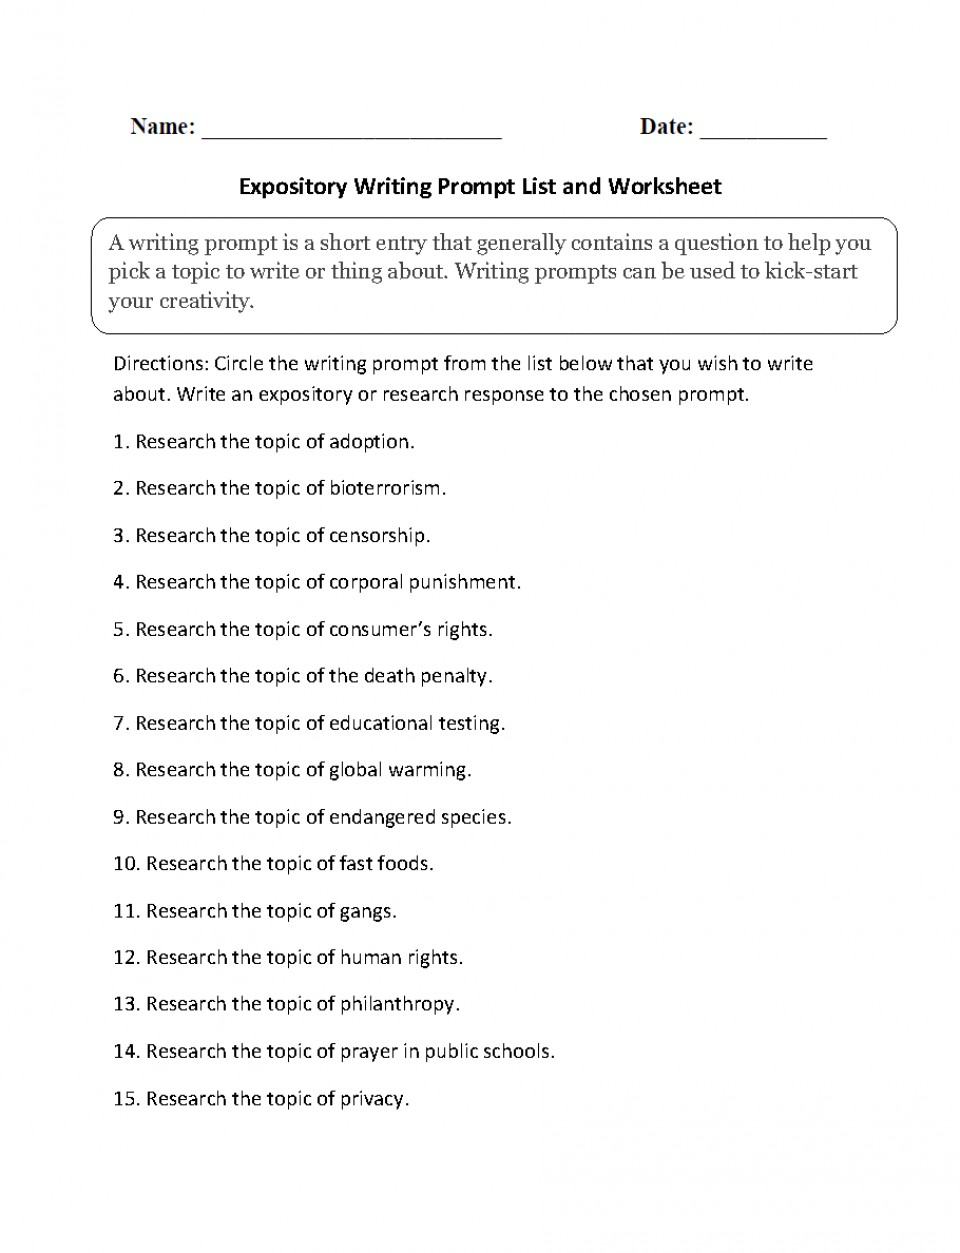 002 Essay Example Expository Topics List Fascinating Explanatory Informative For College High School Prompt 4th Grade 960